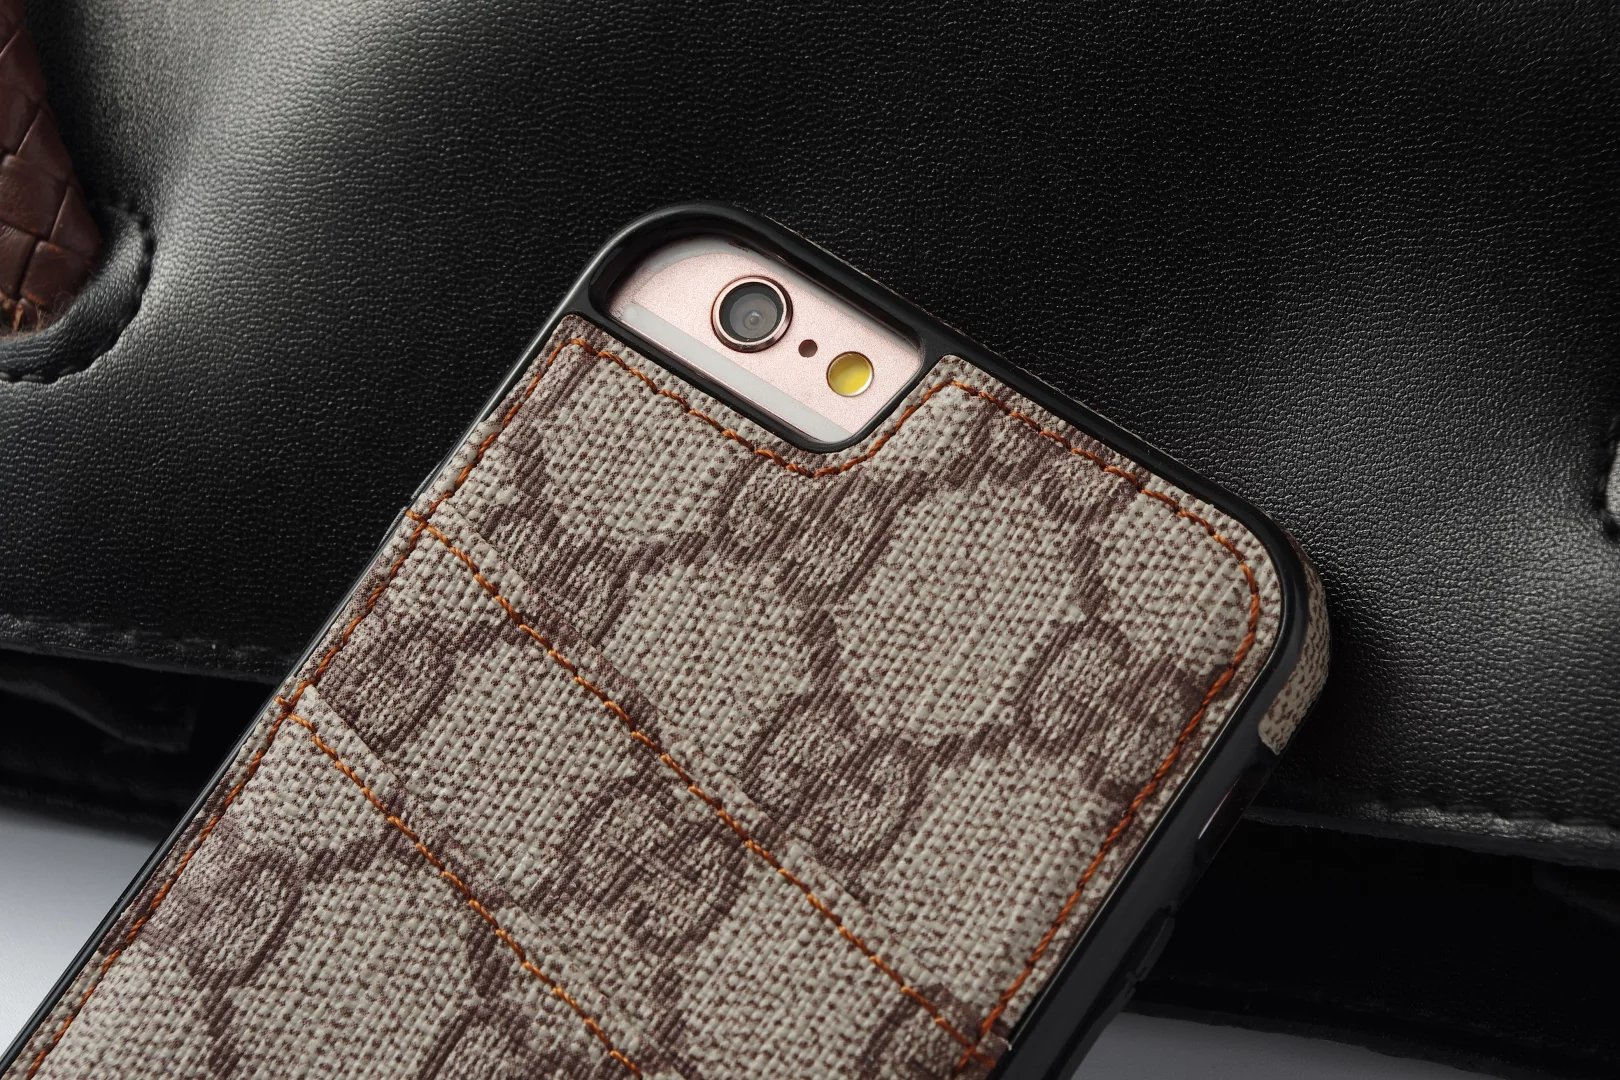 phone cases for iphone 8 iphone 8 full case Gucci iphone 8 case logitech iphone case hot iphone 8 cases mophie battery life iphone 8g cover iphon cover what is the best iphone 8 case